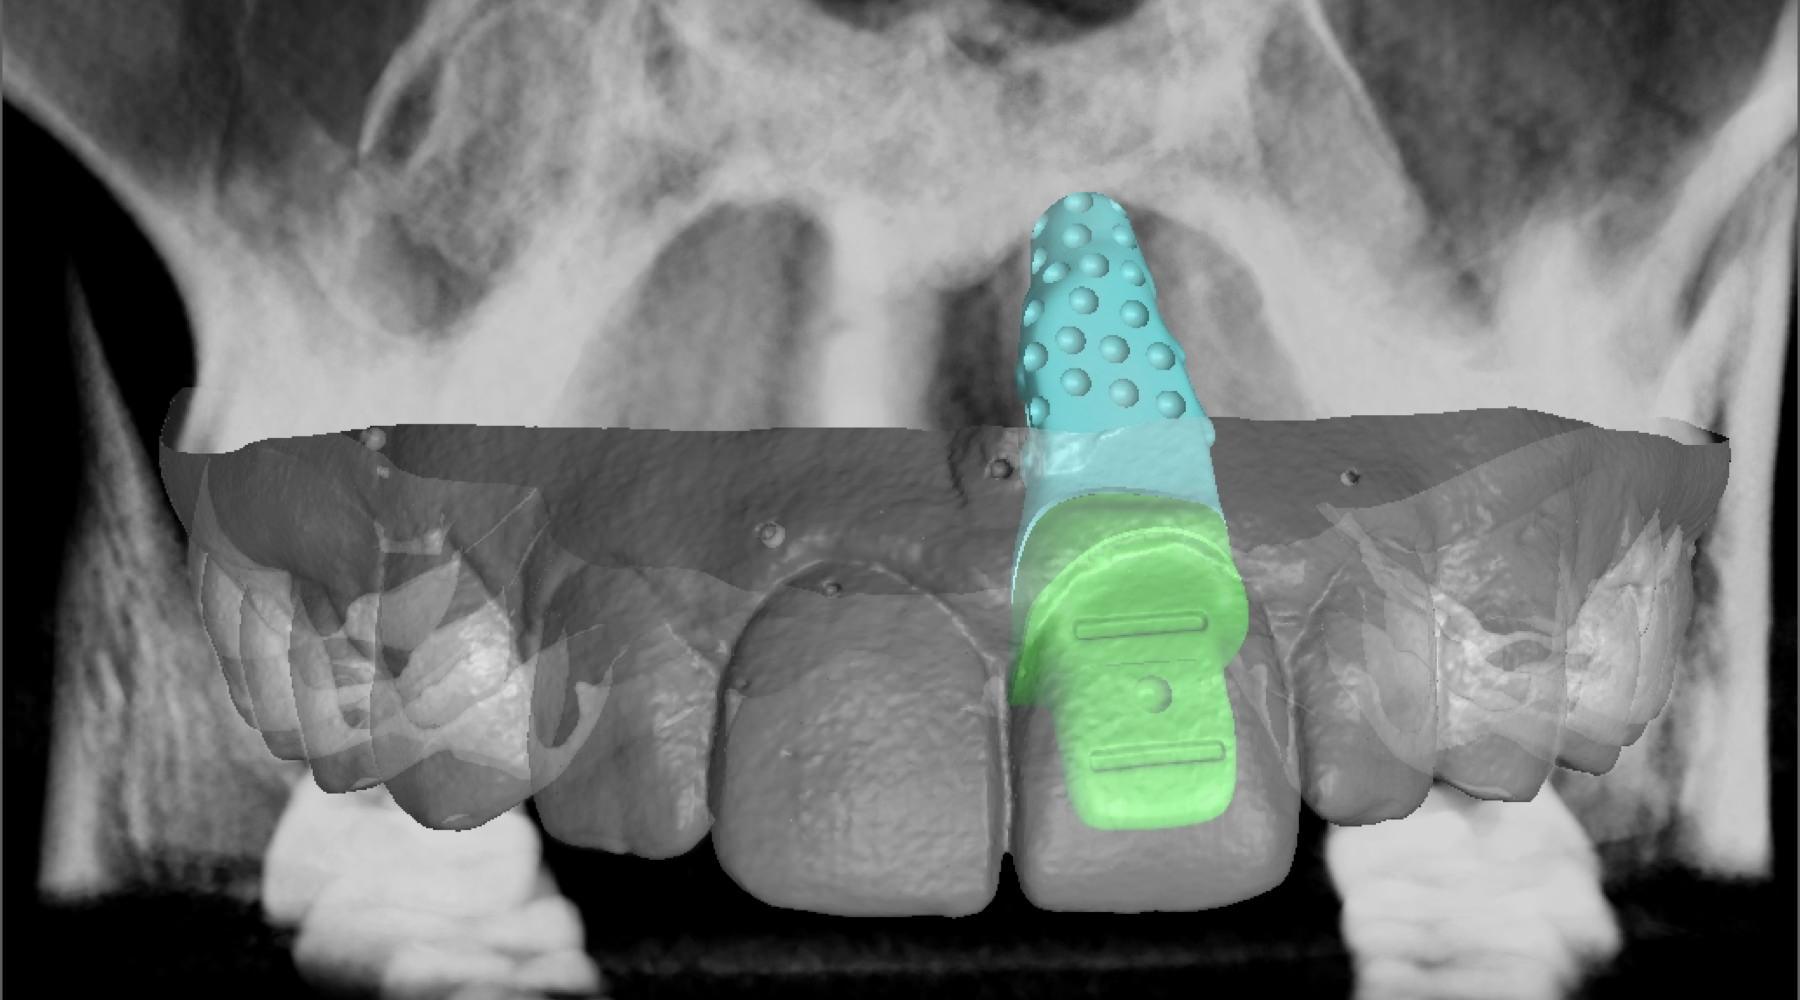 x-ray analysis of the implant insertion